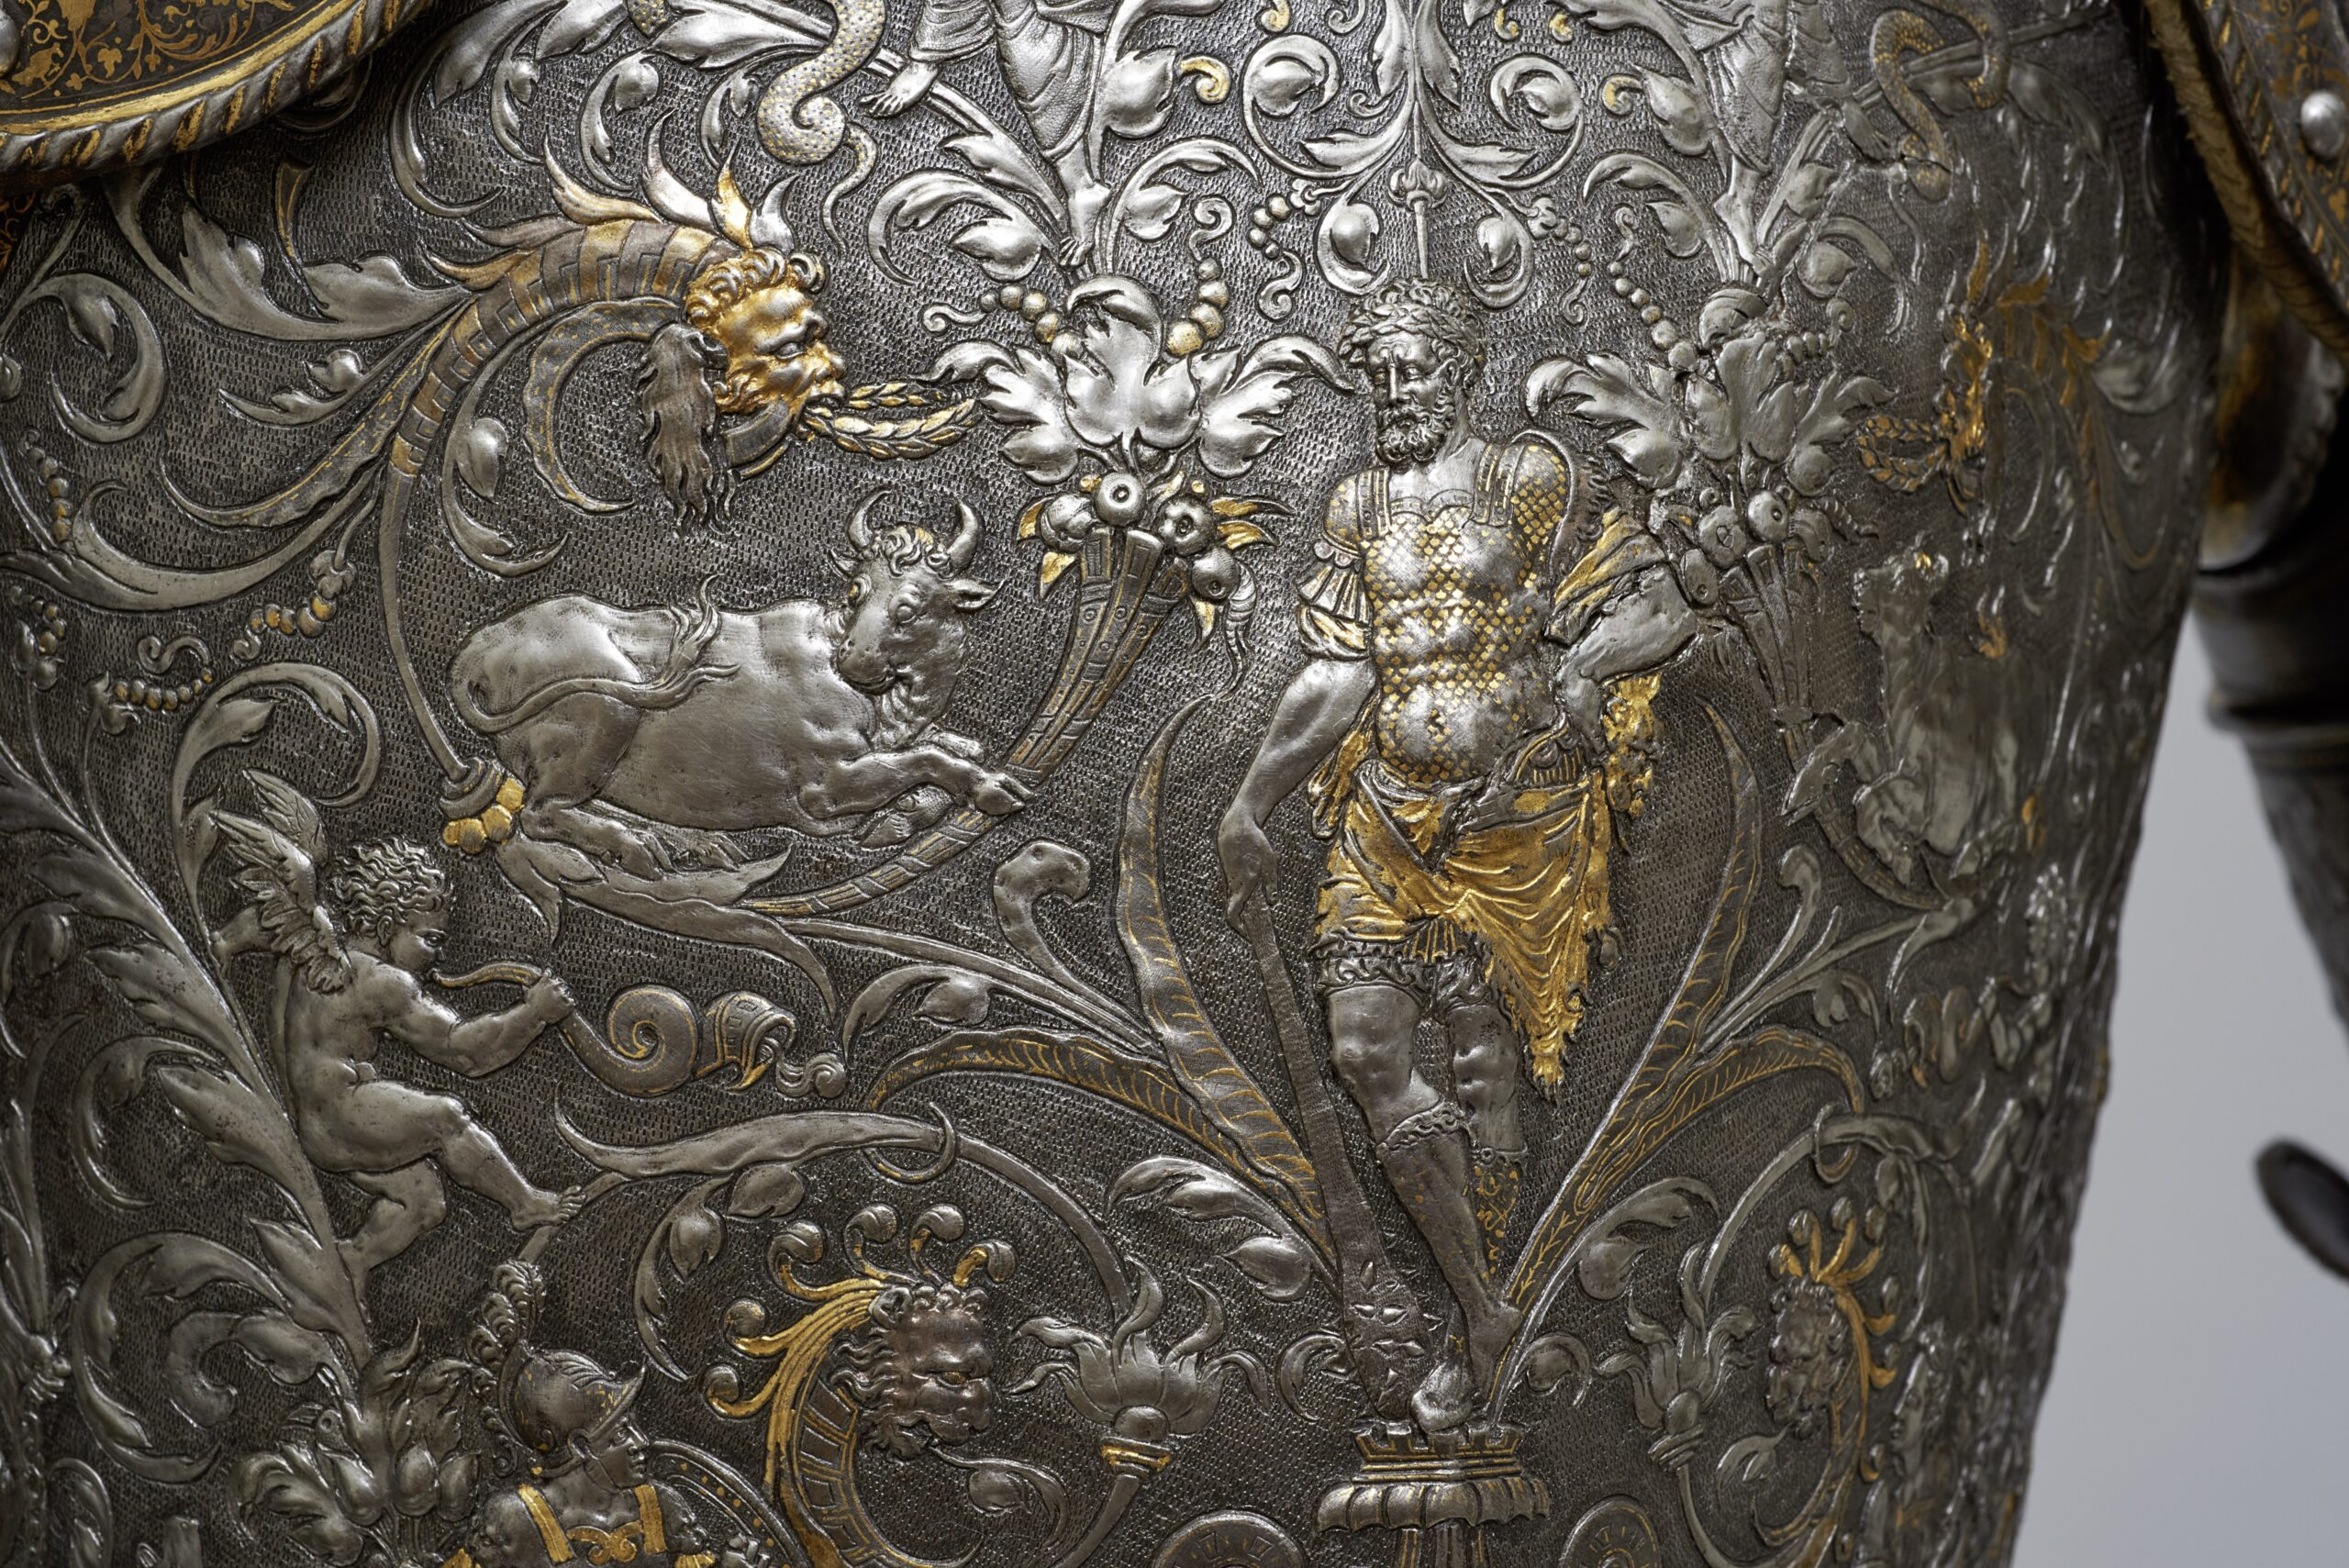 Fig. 2: Detail of The so-called Hercules Armor of King (Emperor) Maximilian II